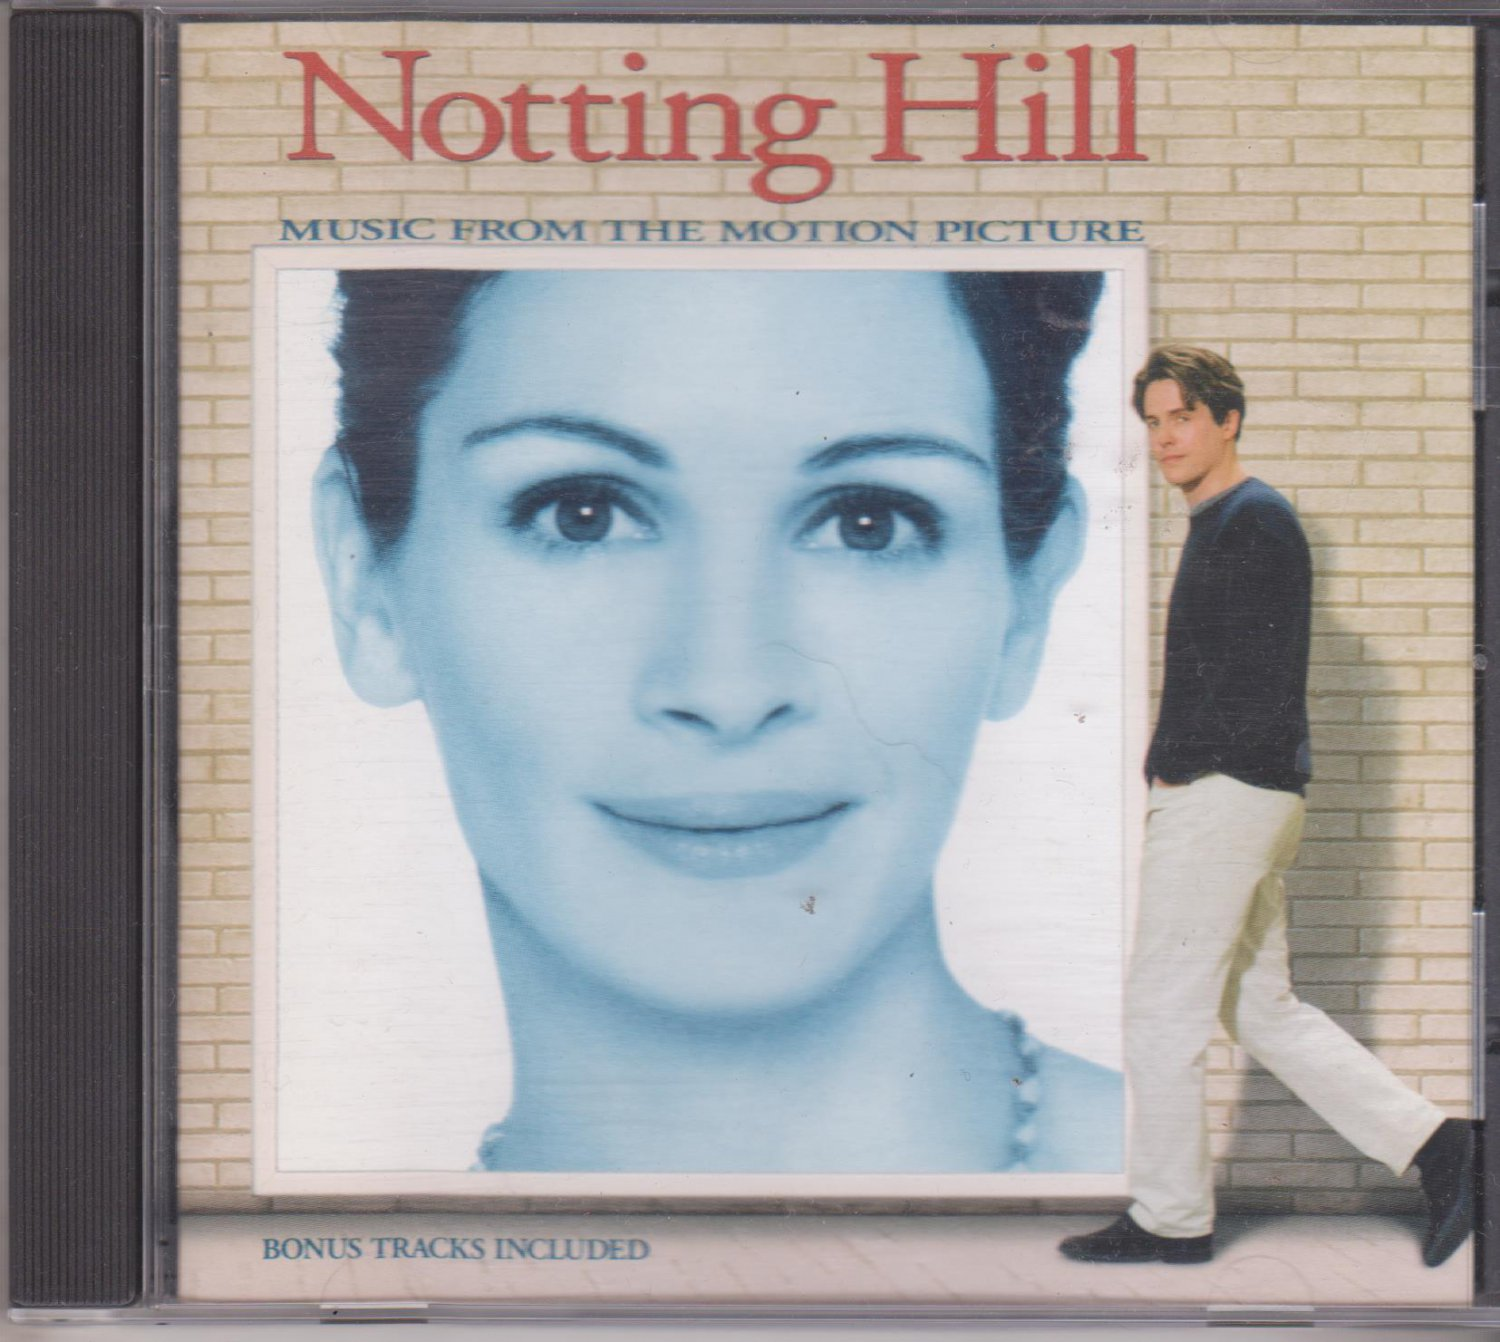 Notting Hill - Music From The Motion Picture  [Cd]